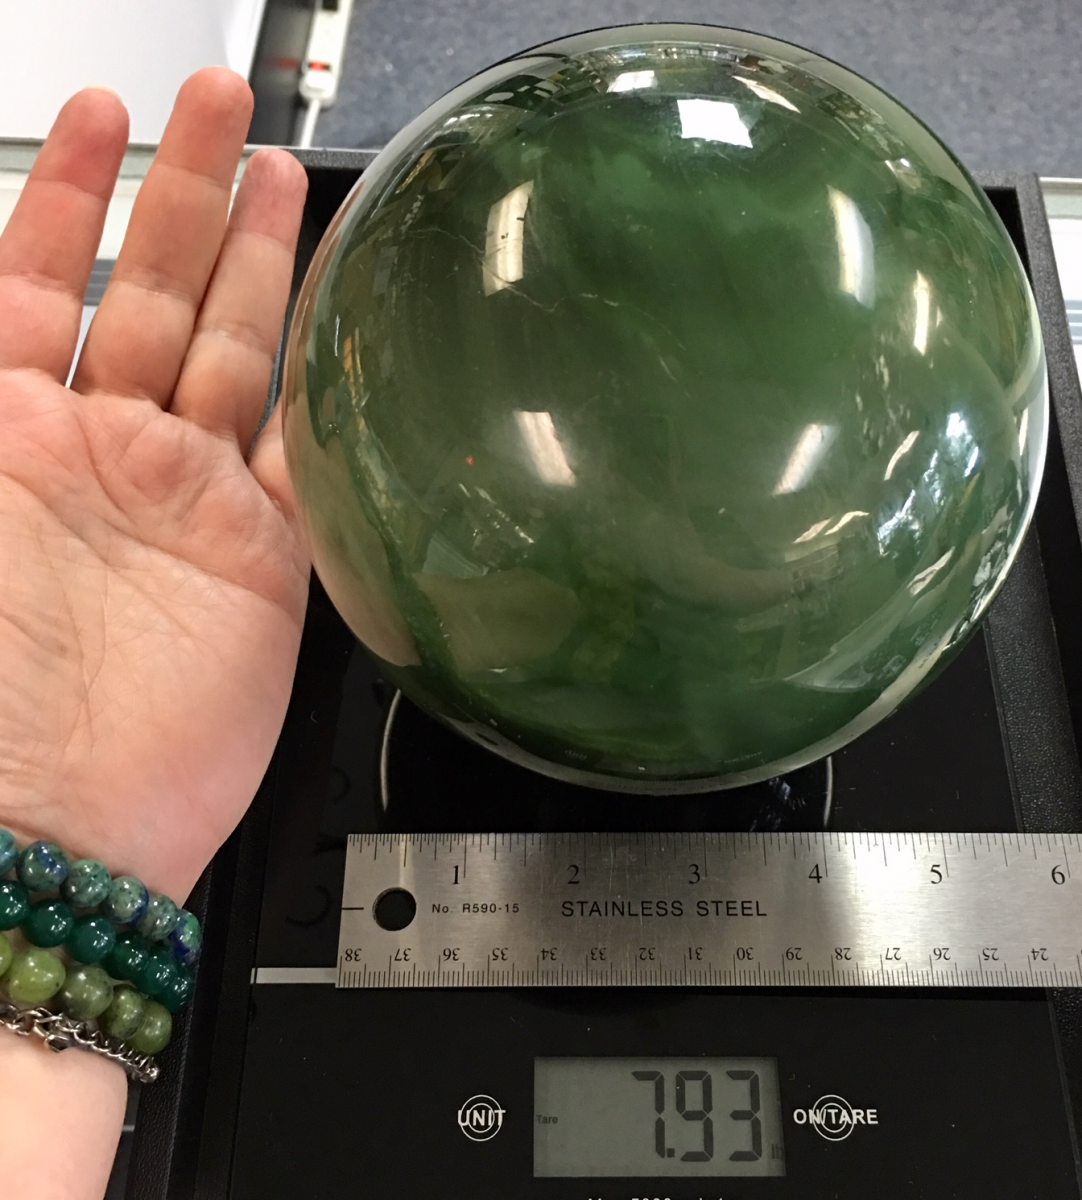 a comparison photo of the almost 8 pound chatoyant jade sphere next to Melina's hand for size. Shown on a digital scale with a ruler.